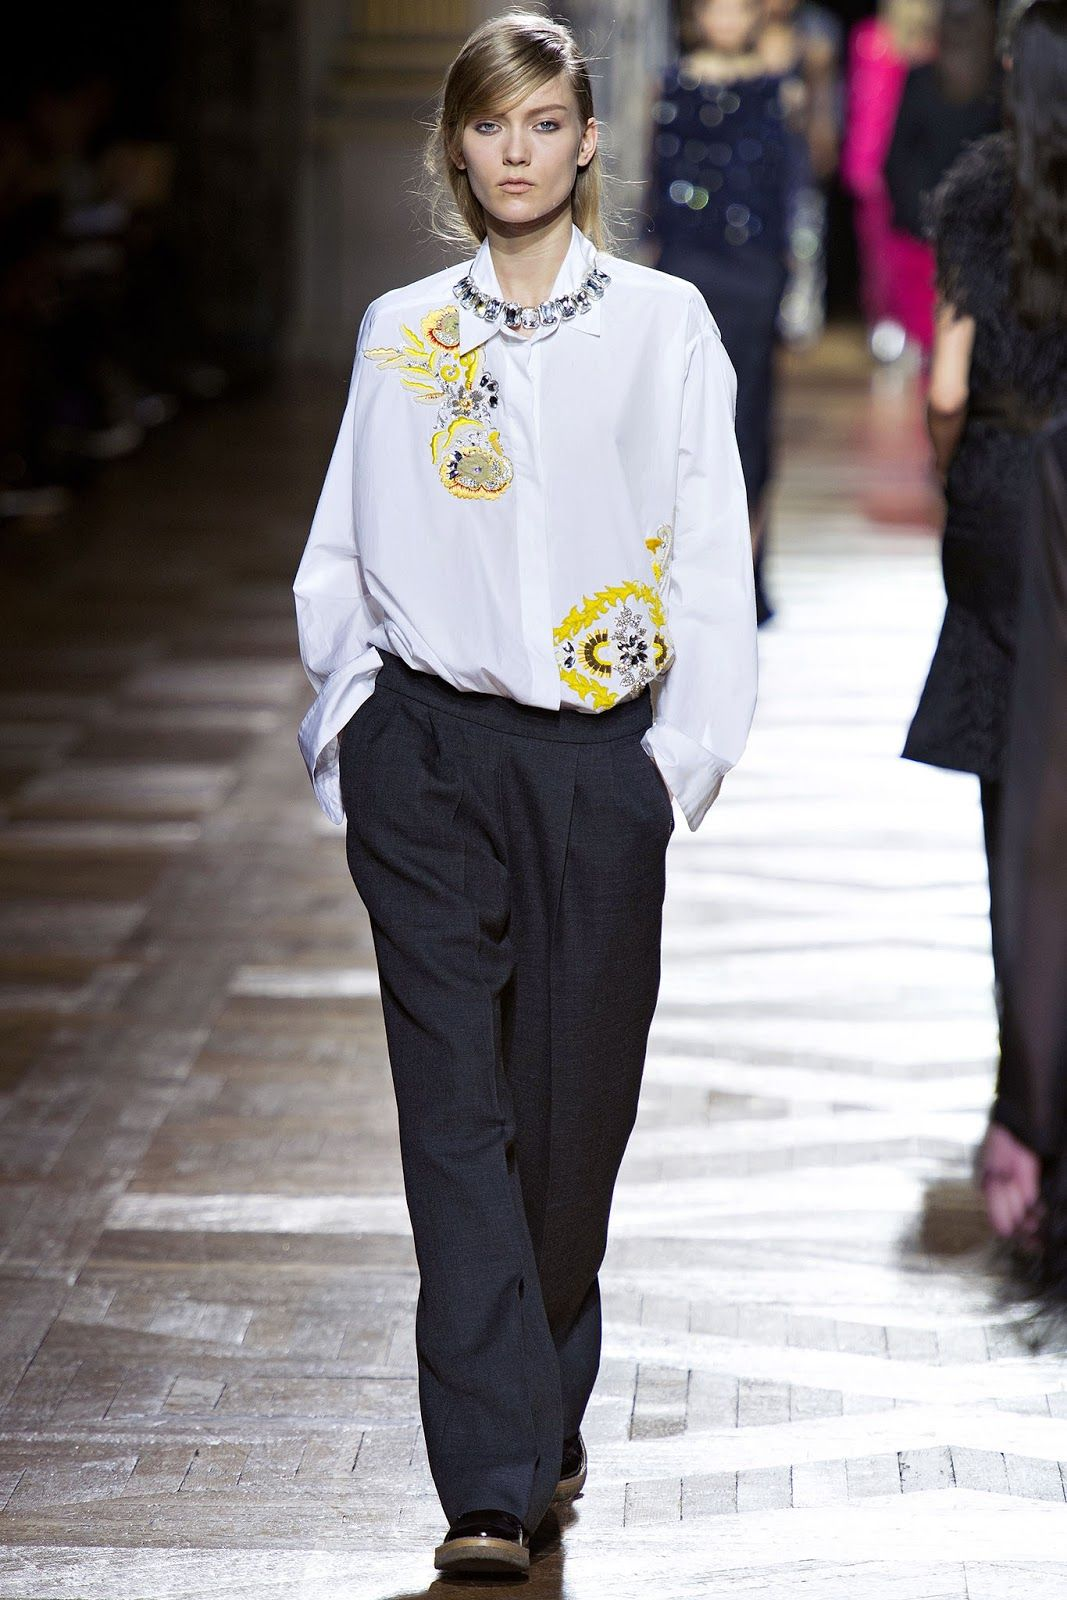 dries van noten f/w 13.14 paris